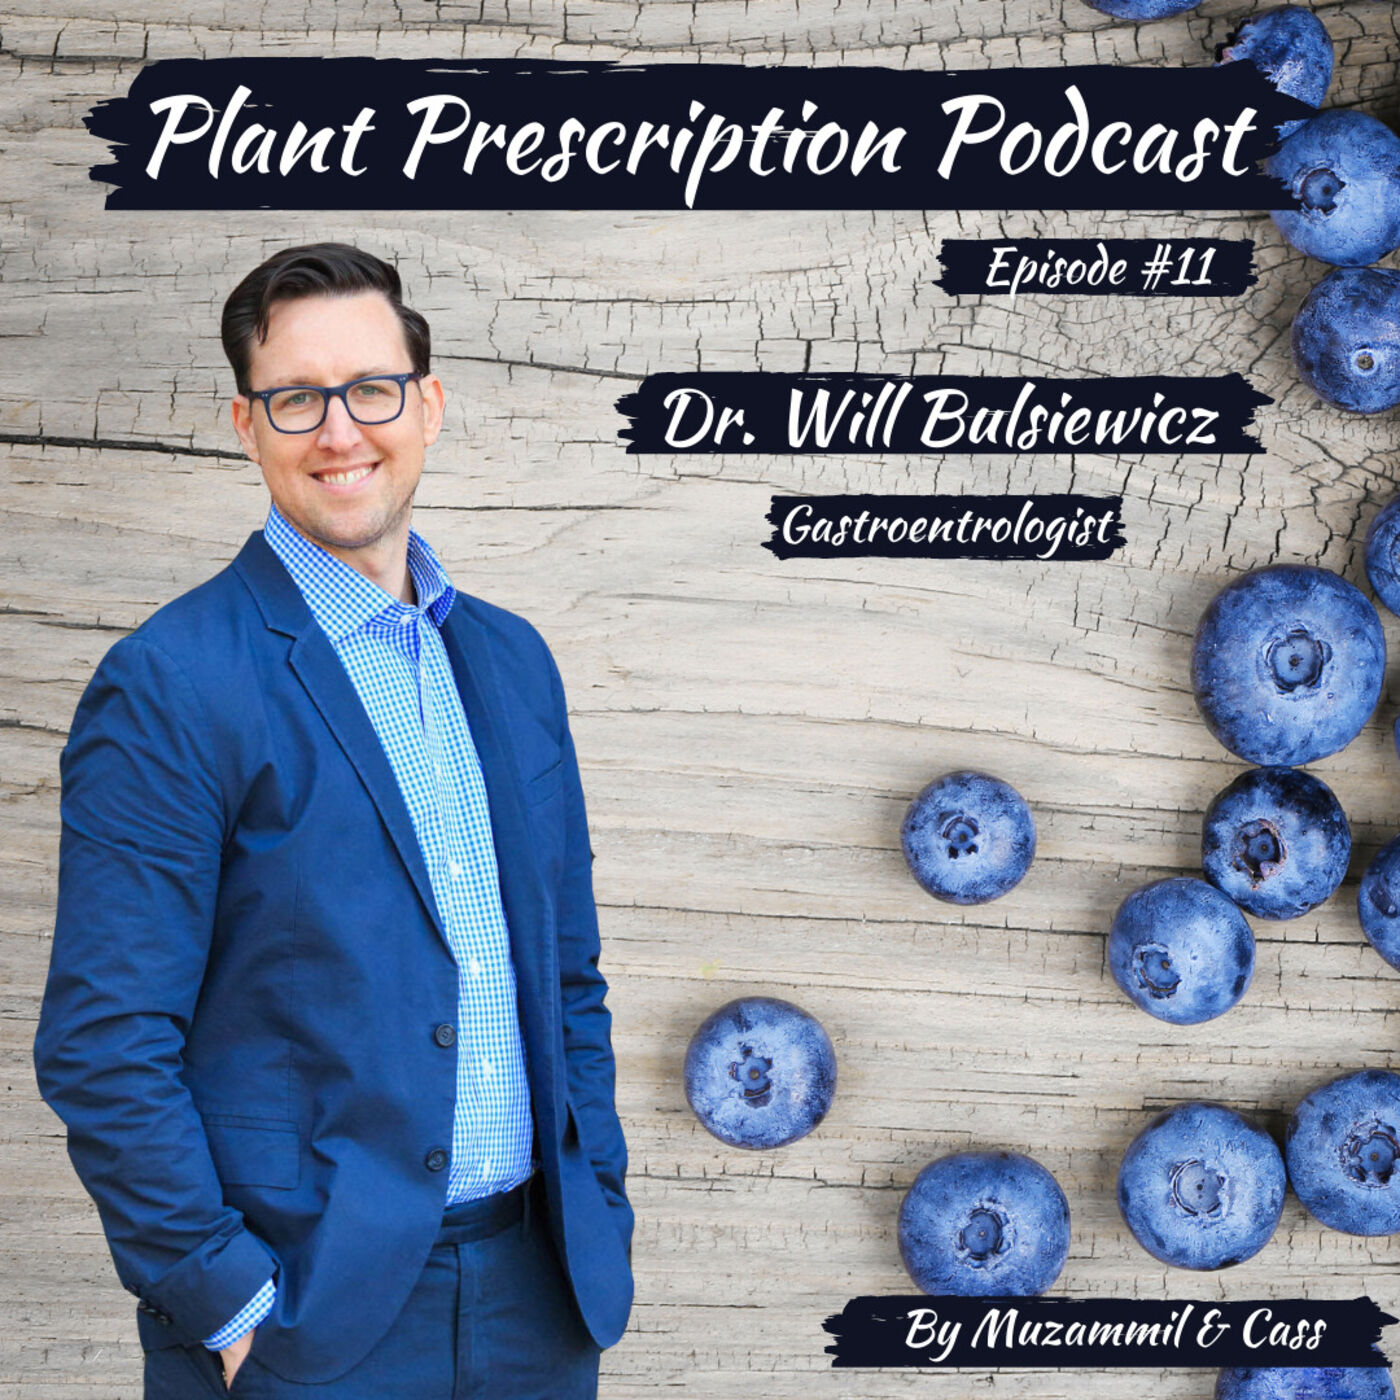 Being fiber fueled and optimizing your gut microbiome with Dr. Will Bulsiewicz